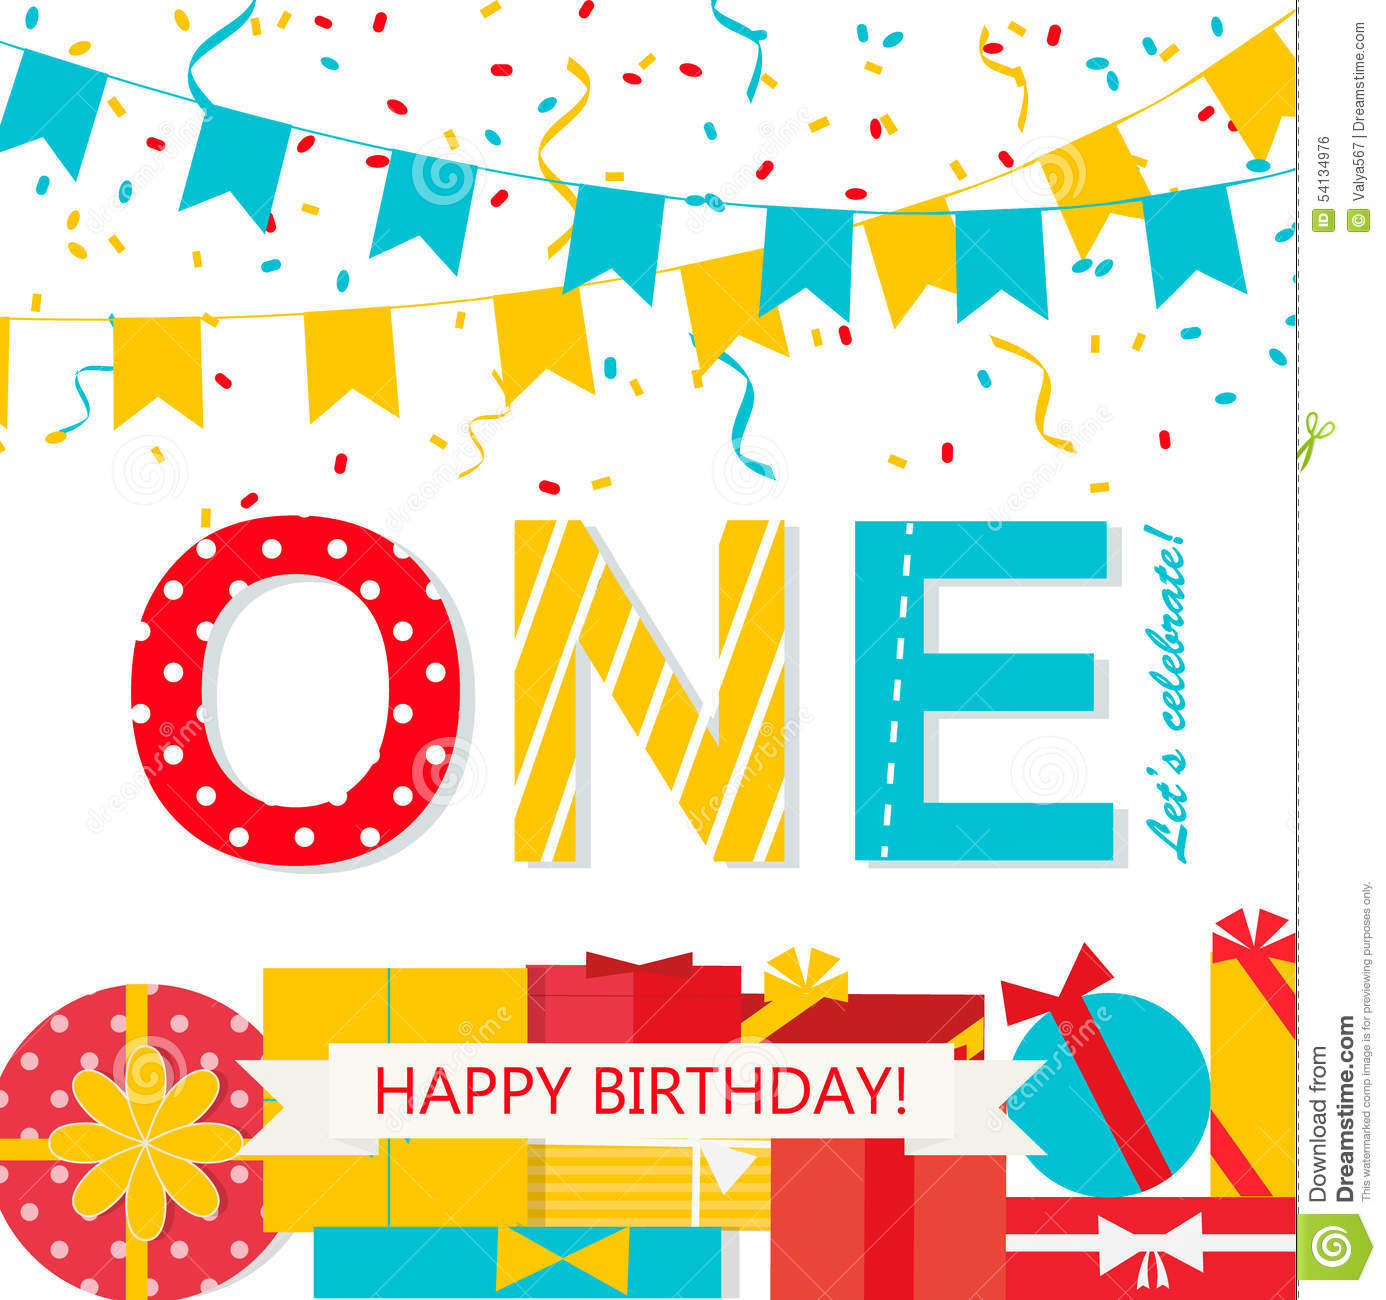 happy 1st birthday background ; happy-first-birthday-anniversary-card-flags-gifts-streamers-54134976